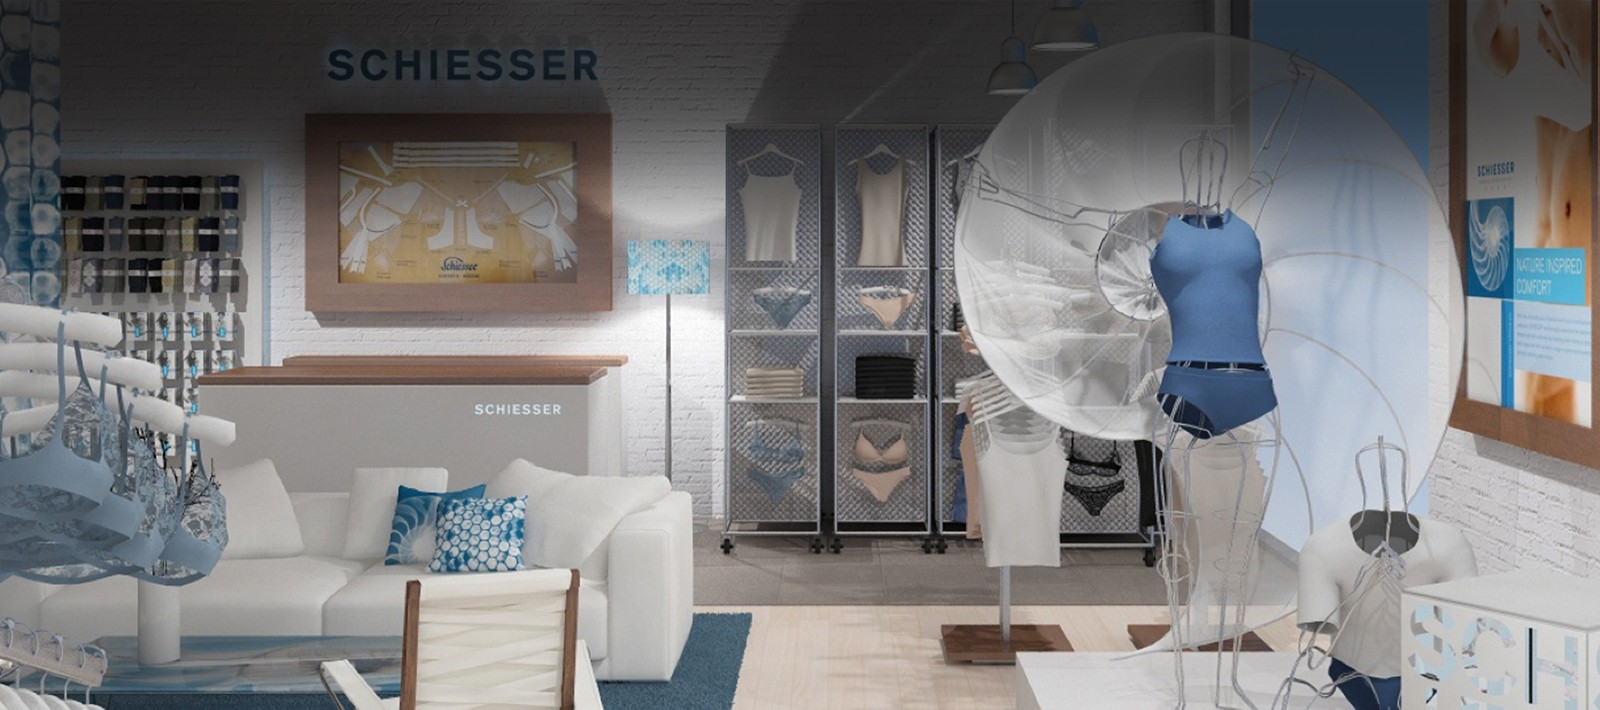 Branded environment for Schiesser